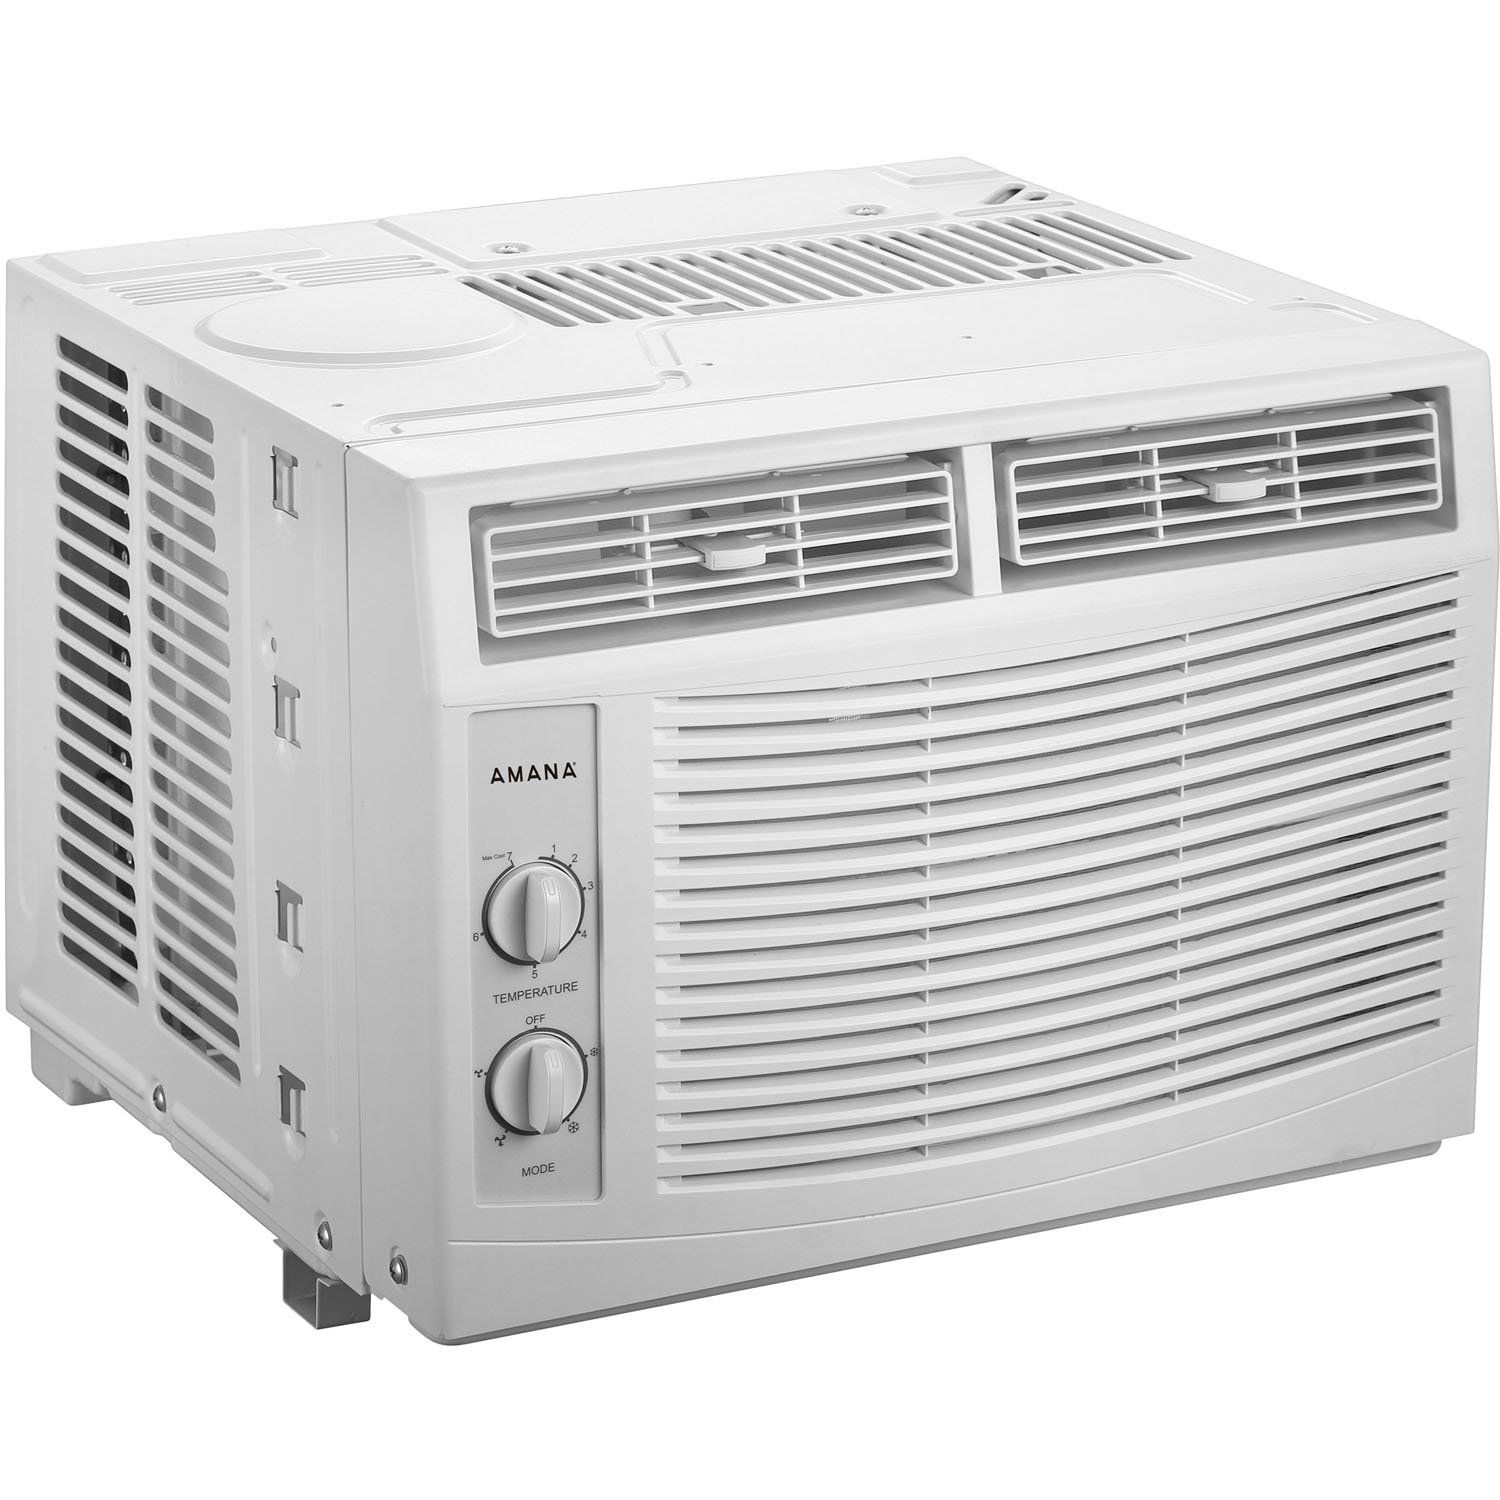 Amana 5000 Btu 115V WindowMounted Air Conditioner with